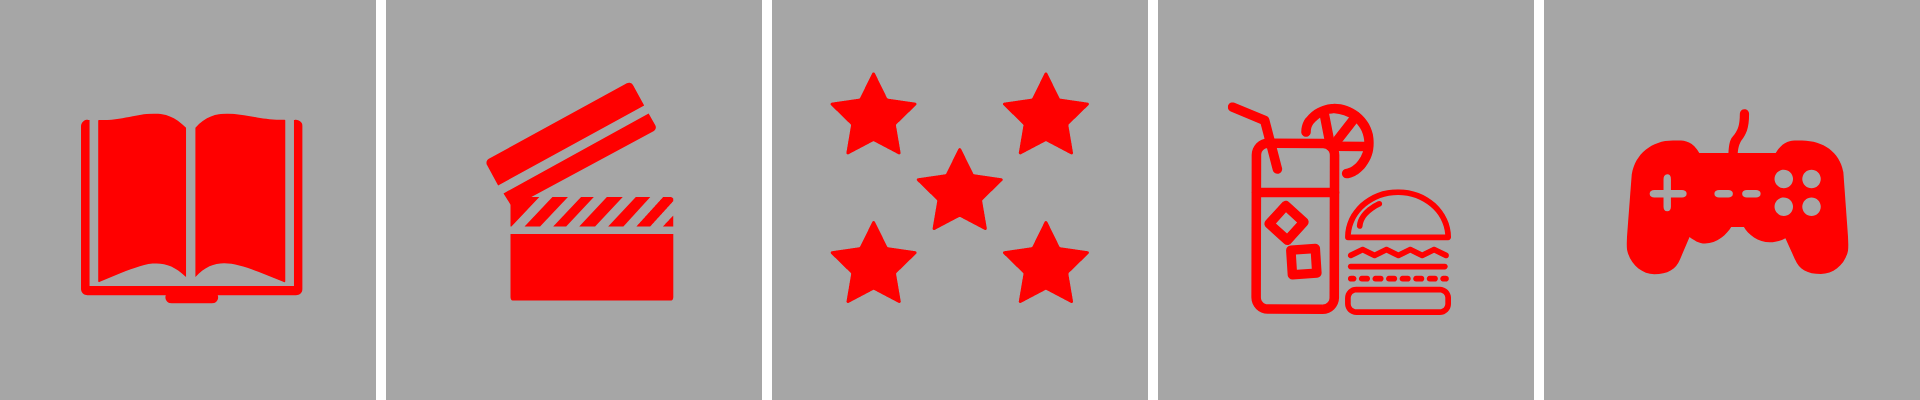 star stack header